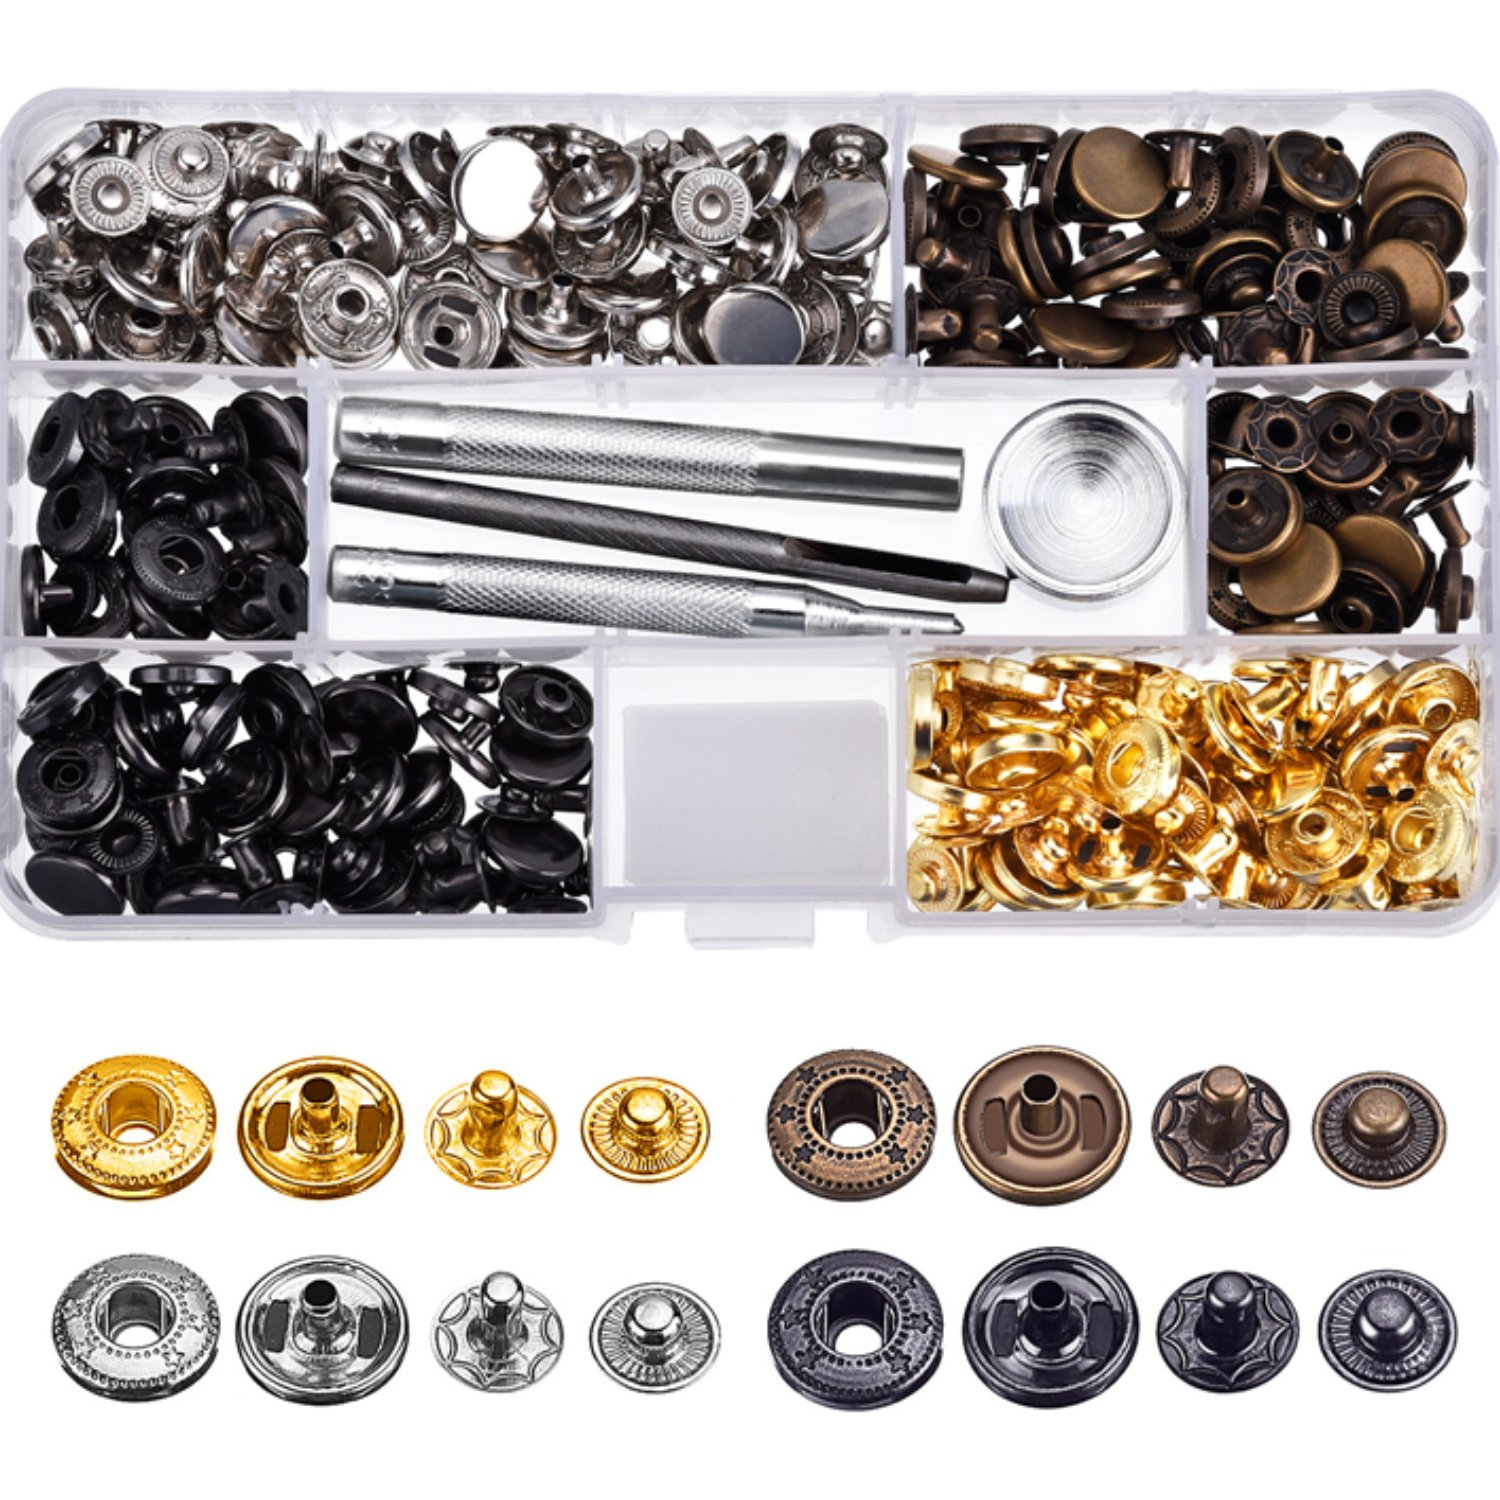 Hotop 80 Set Snap Fasteners Snaps Button Press Studs with 4 Pieces Fixing Tools, 12.5 mm in Diameter 4337005852